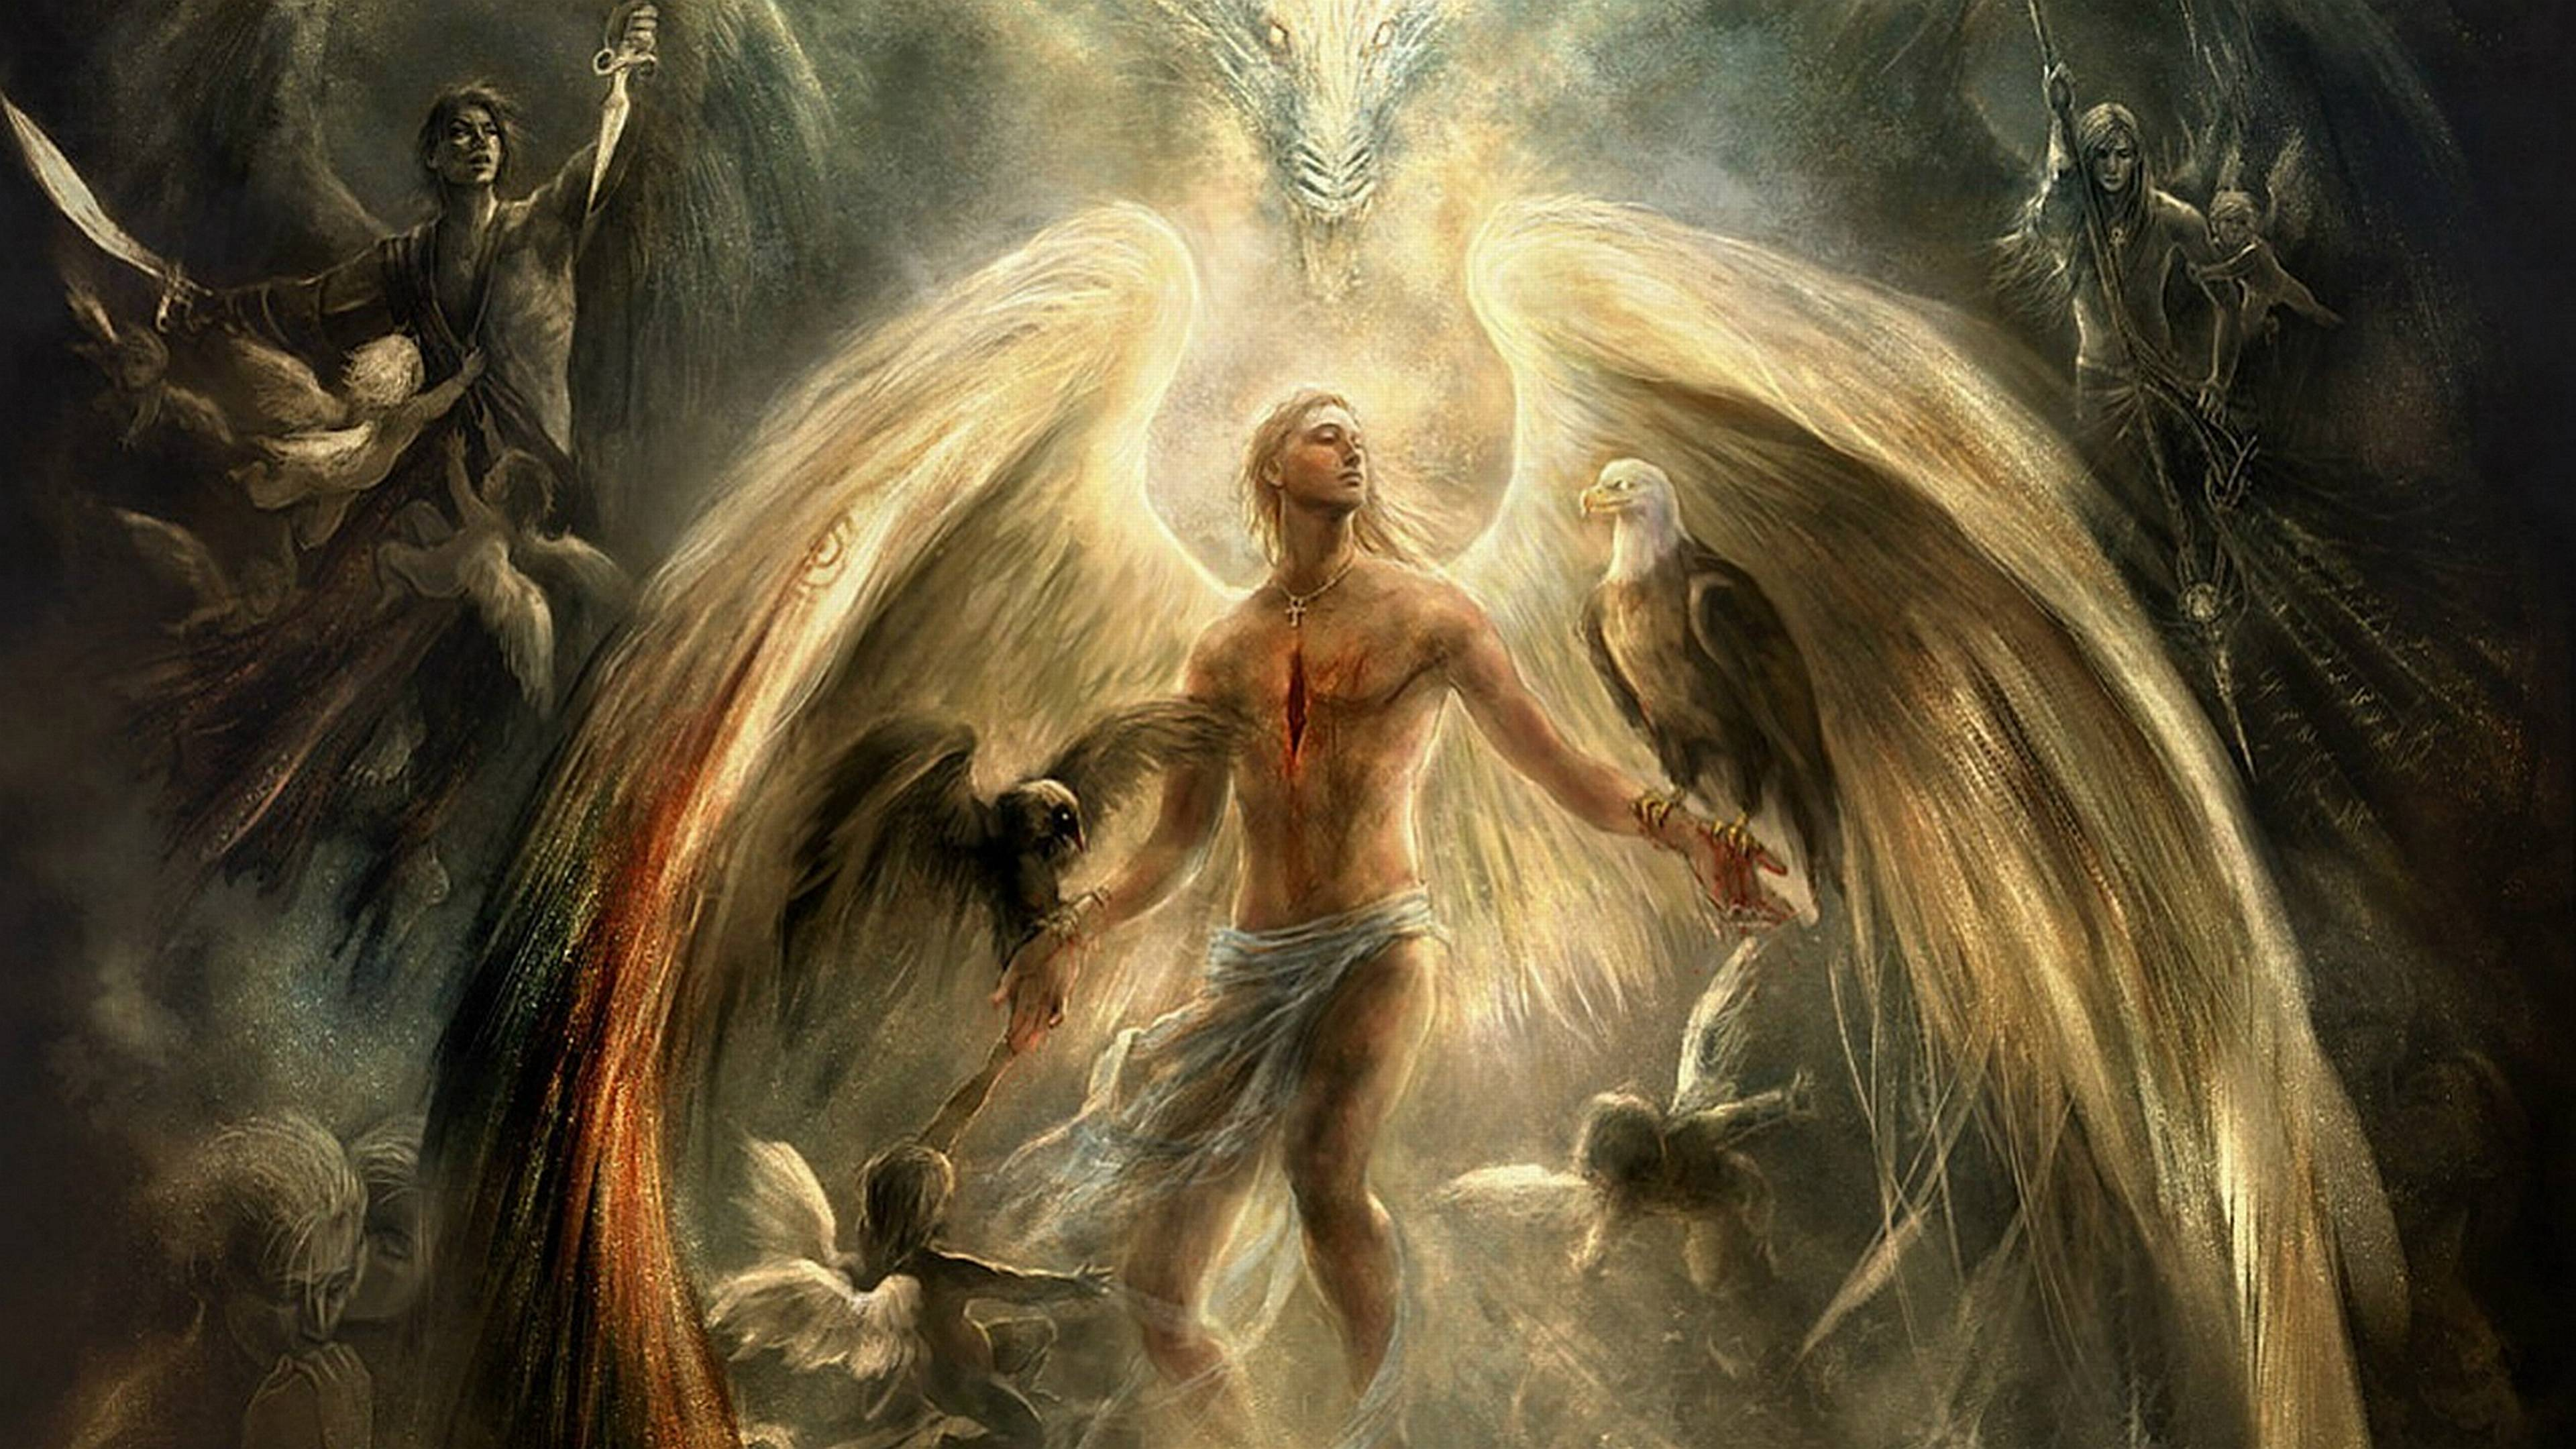 Wallpapers Of Angels Wallpaper Cave